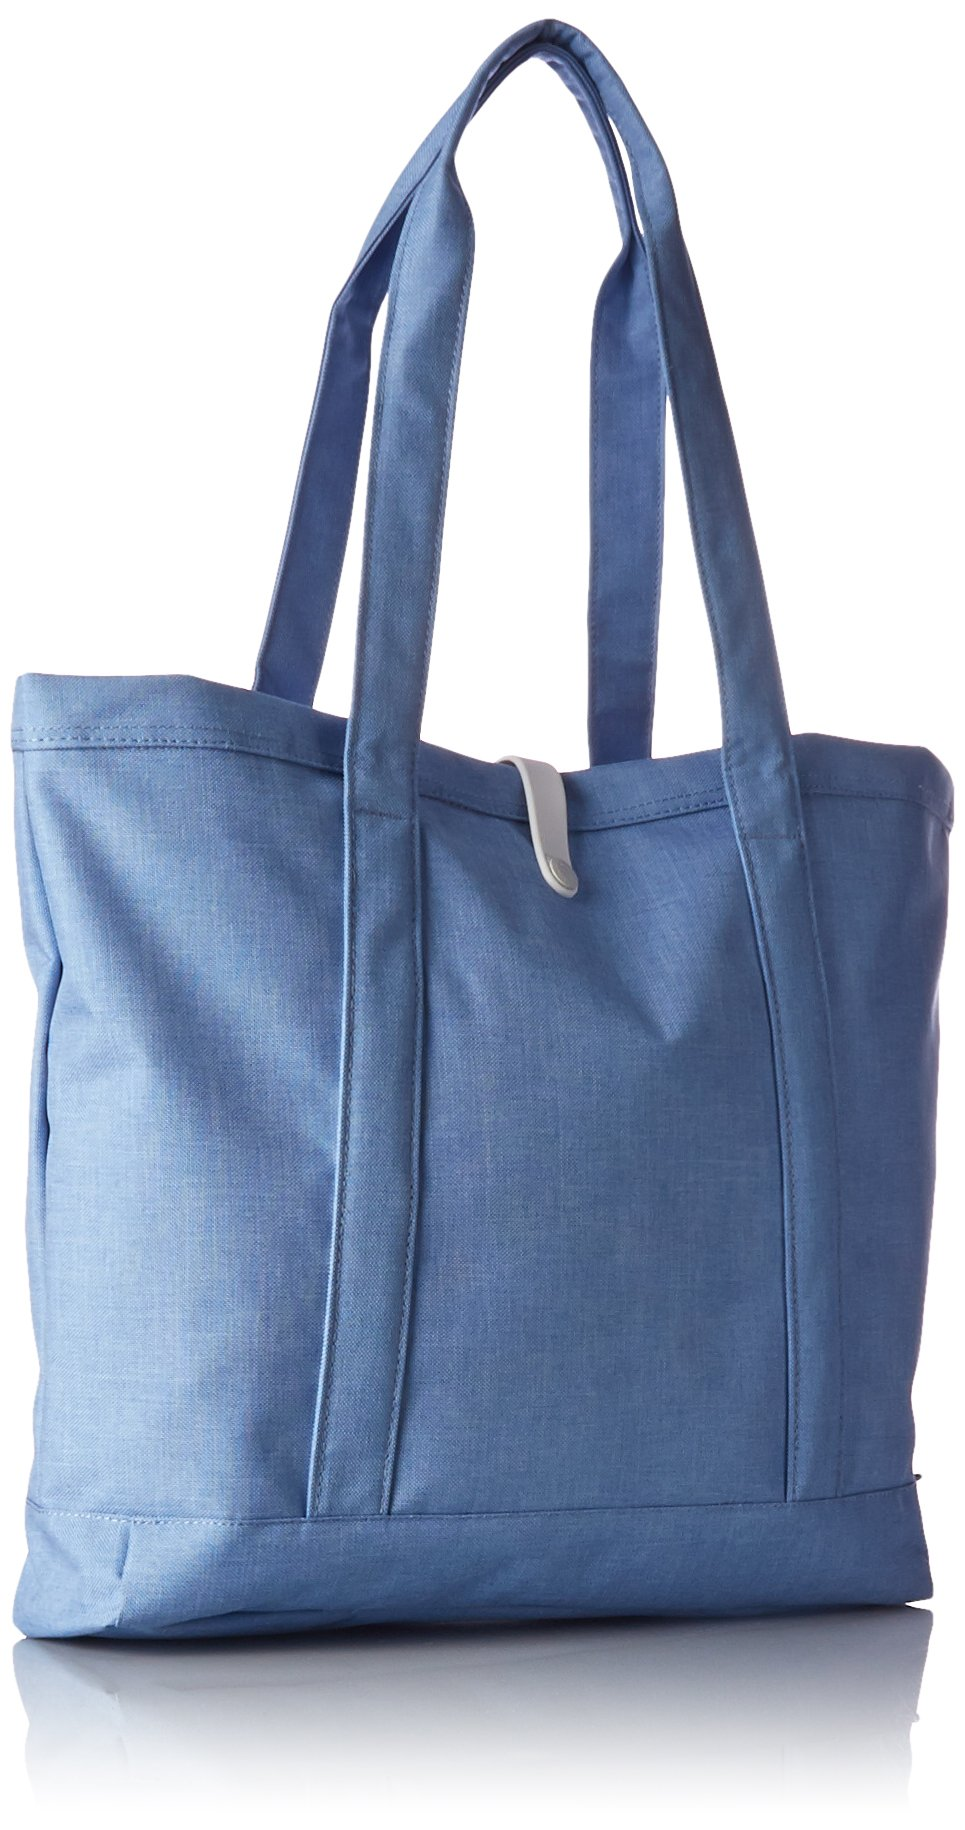 Herschel Supply Co. Market X-Large Travel Tote, Chambray, One Size by Herschel Supply Co. (Image #5)